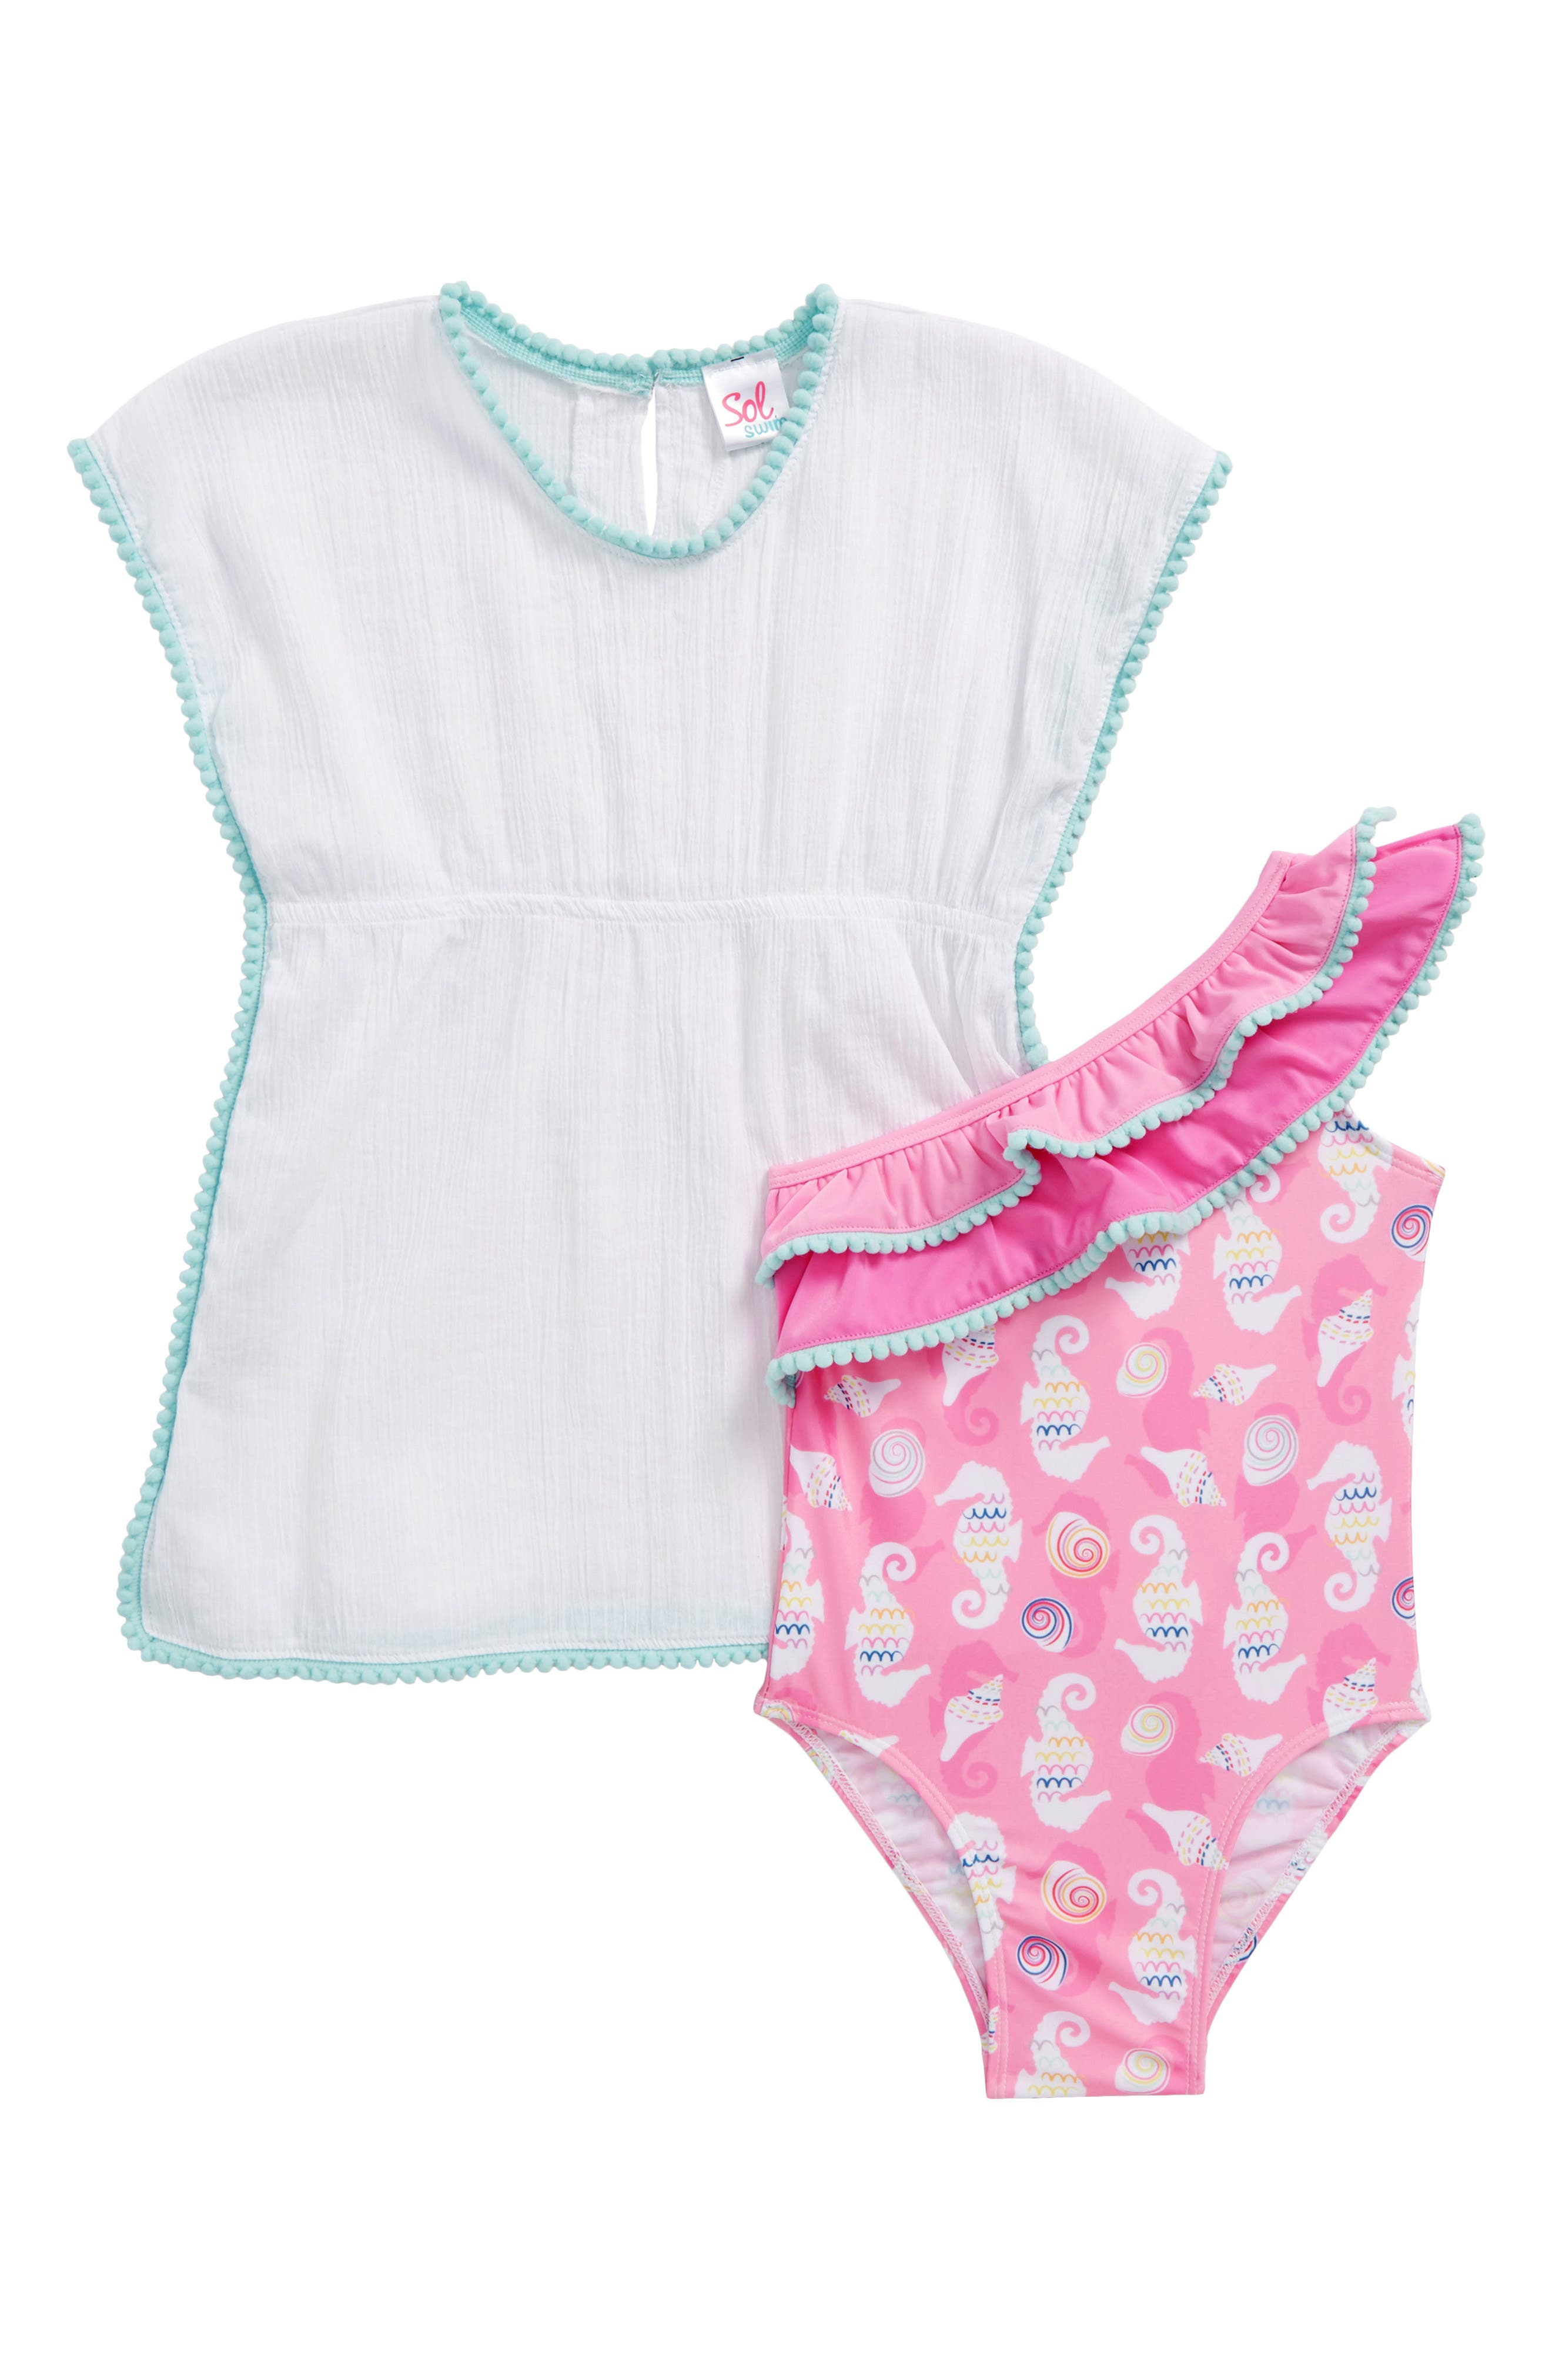 Seahorse One-Piece Swimsuit & Cover-Up Set,                         Main,                         color,